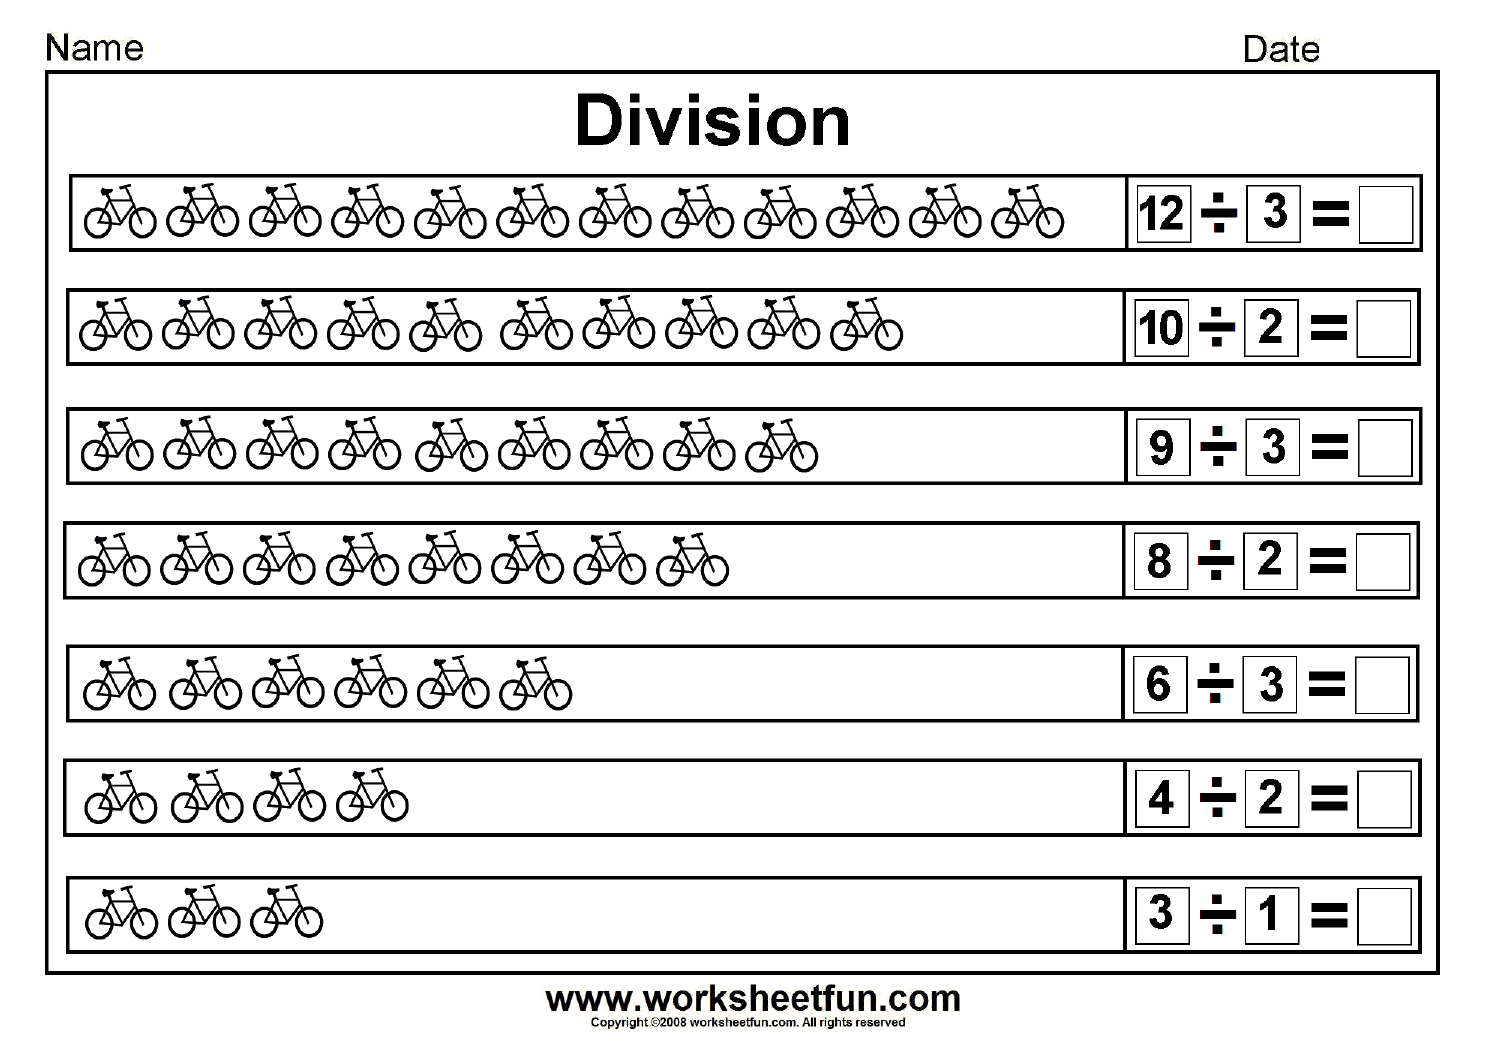 worksheet Division Worksheets For Grade 3 2nd grade division worksheets free library download worksheets